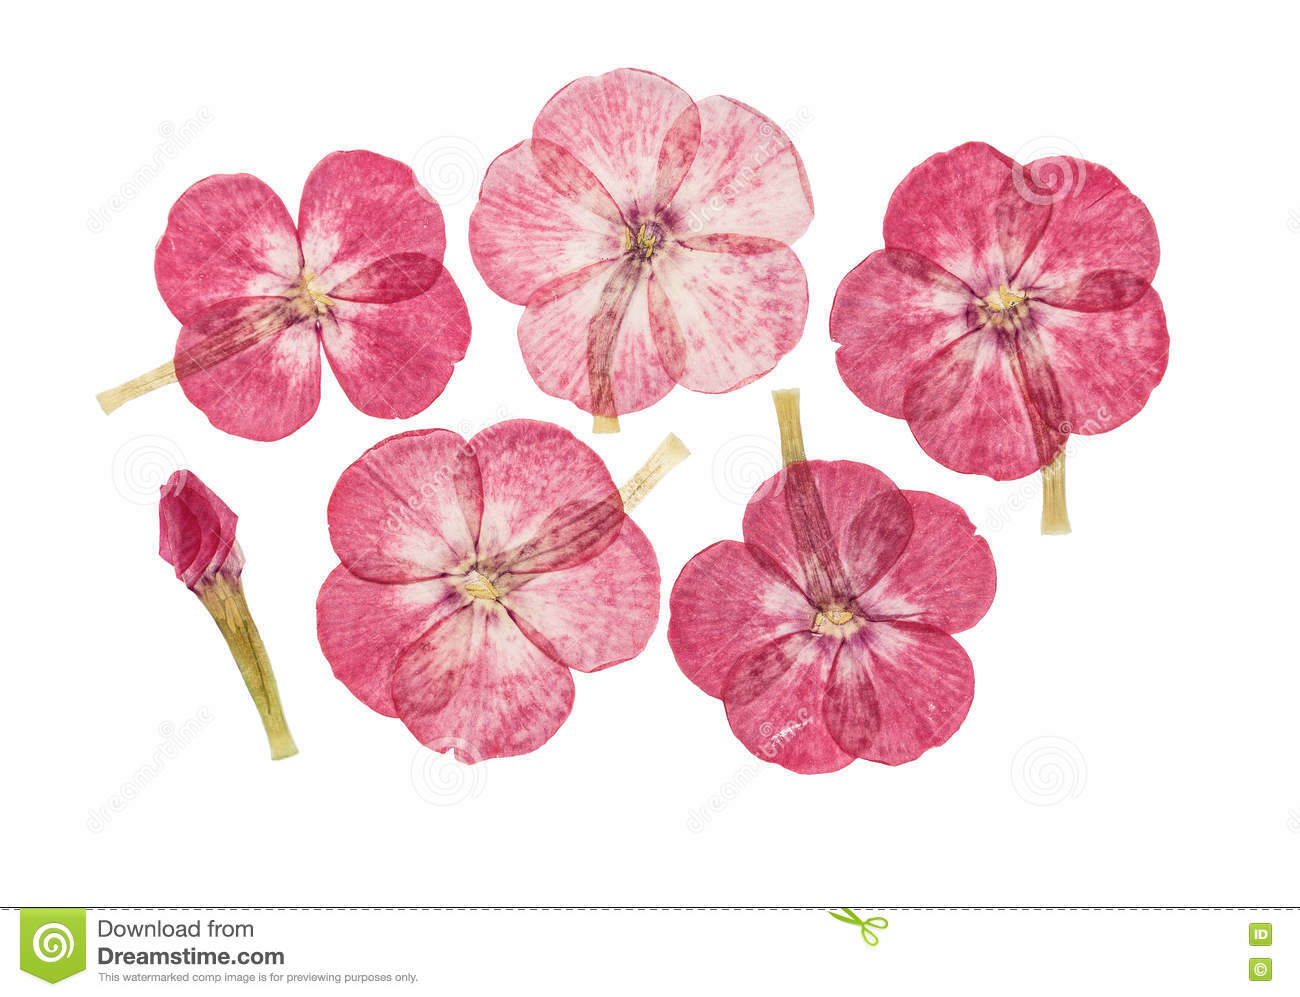 How to scrapbook dried flowers - Set Of Pressed And Dried Flowers Pink Phlox